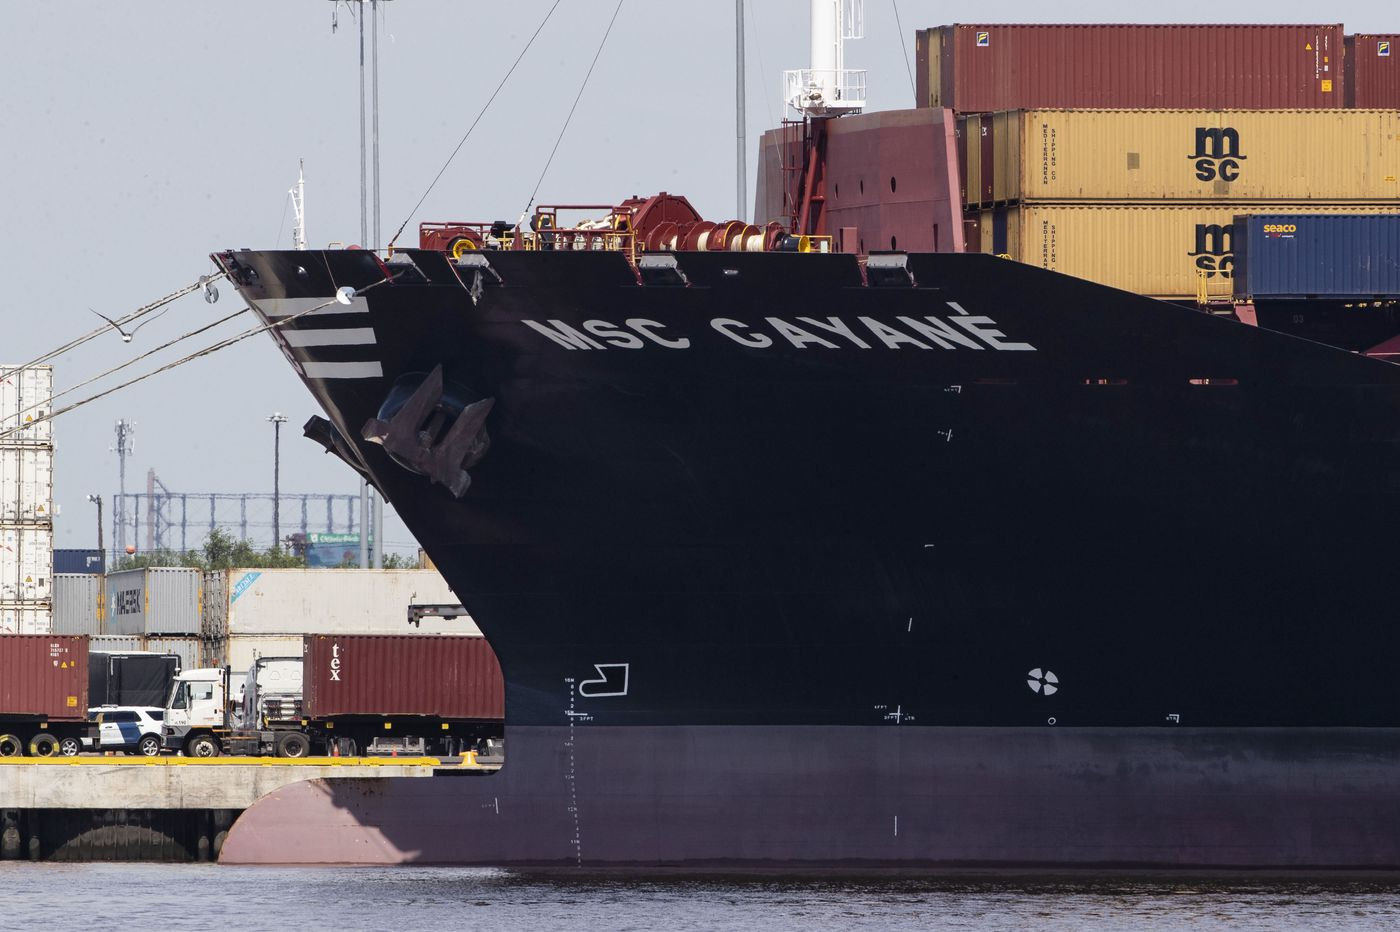 US Customs seizes ship where huge cocaine load was found